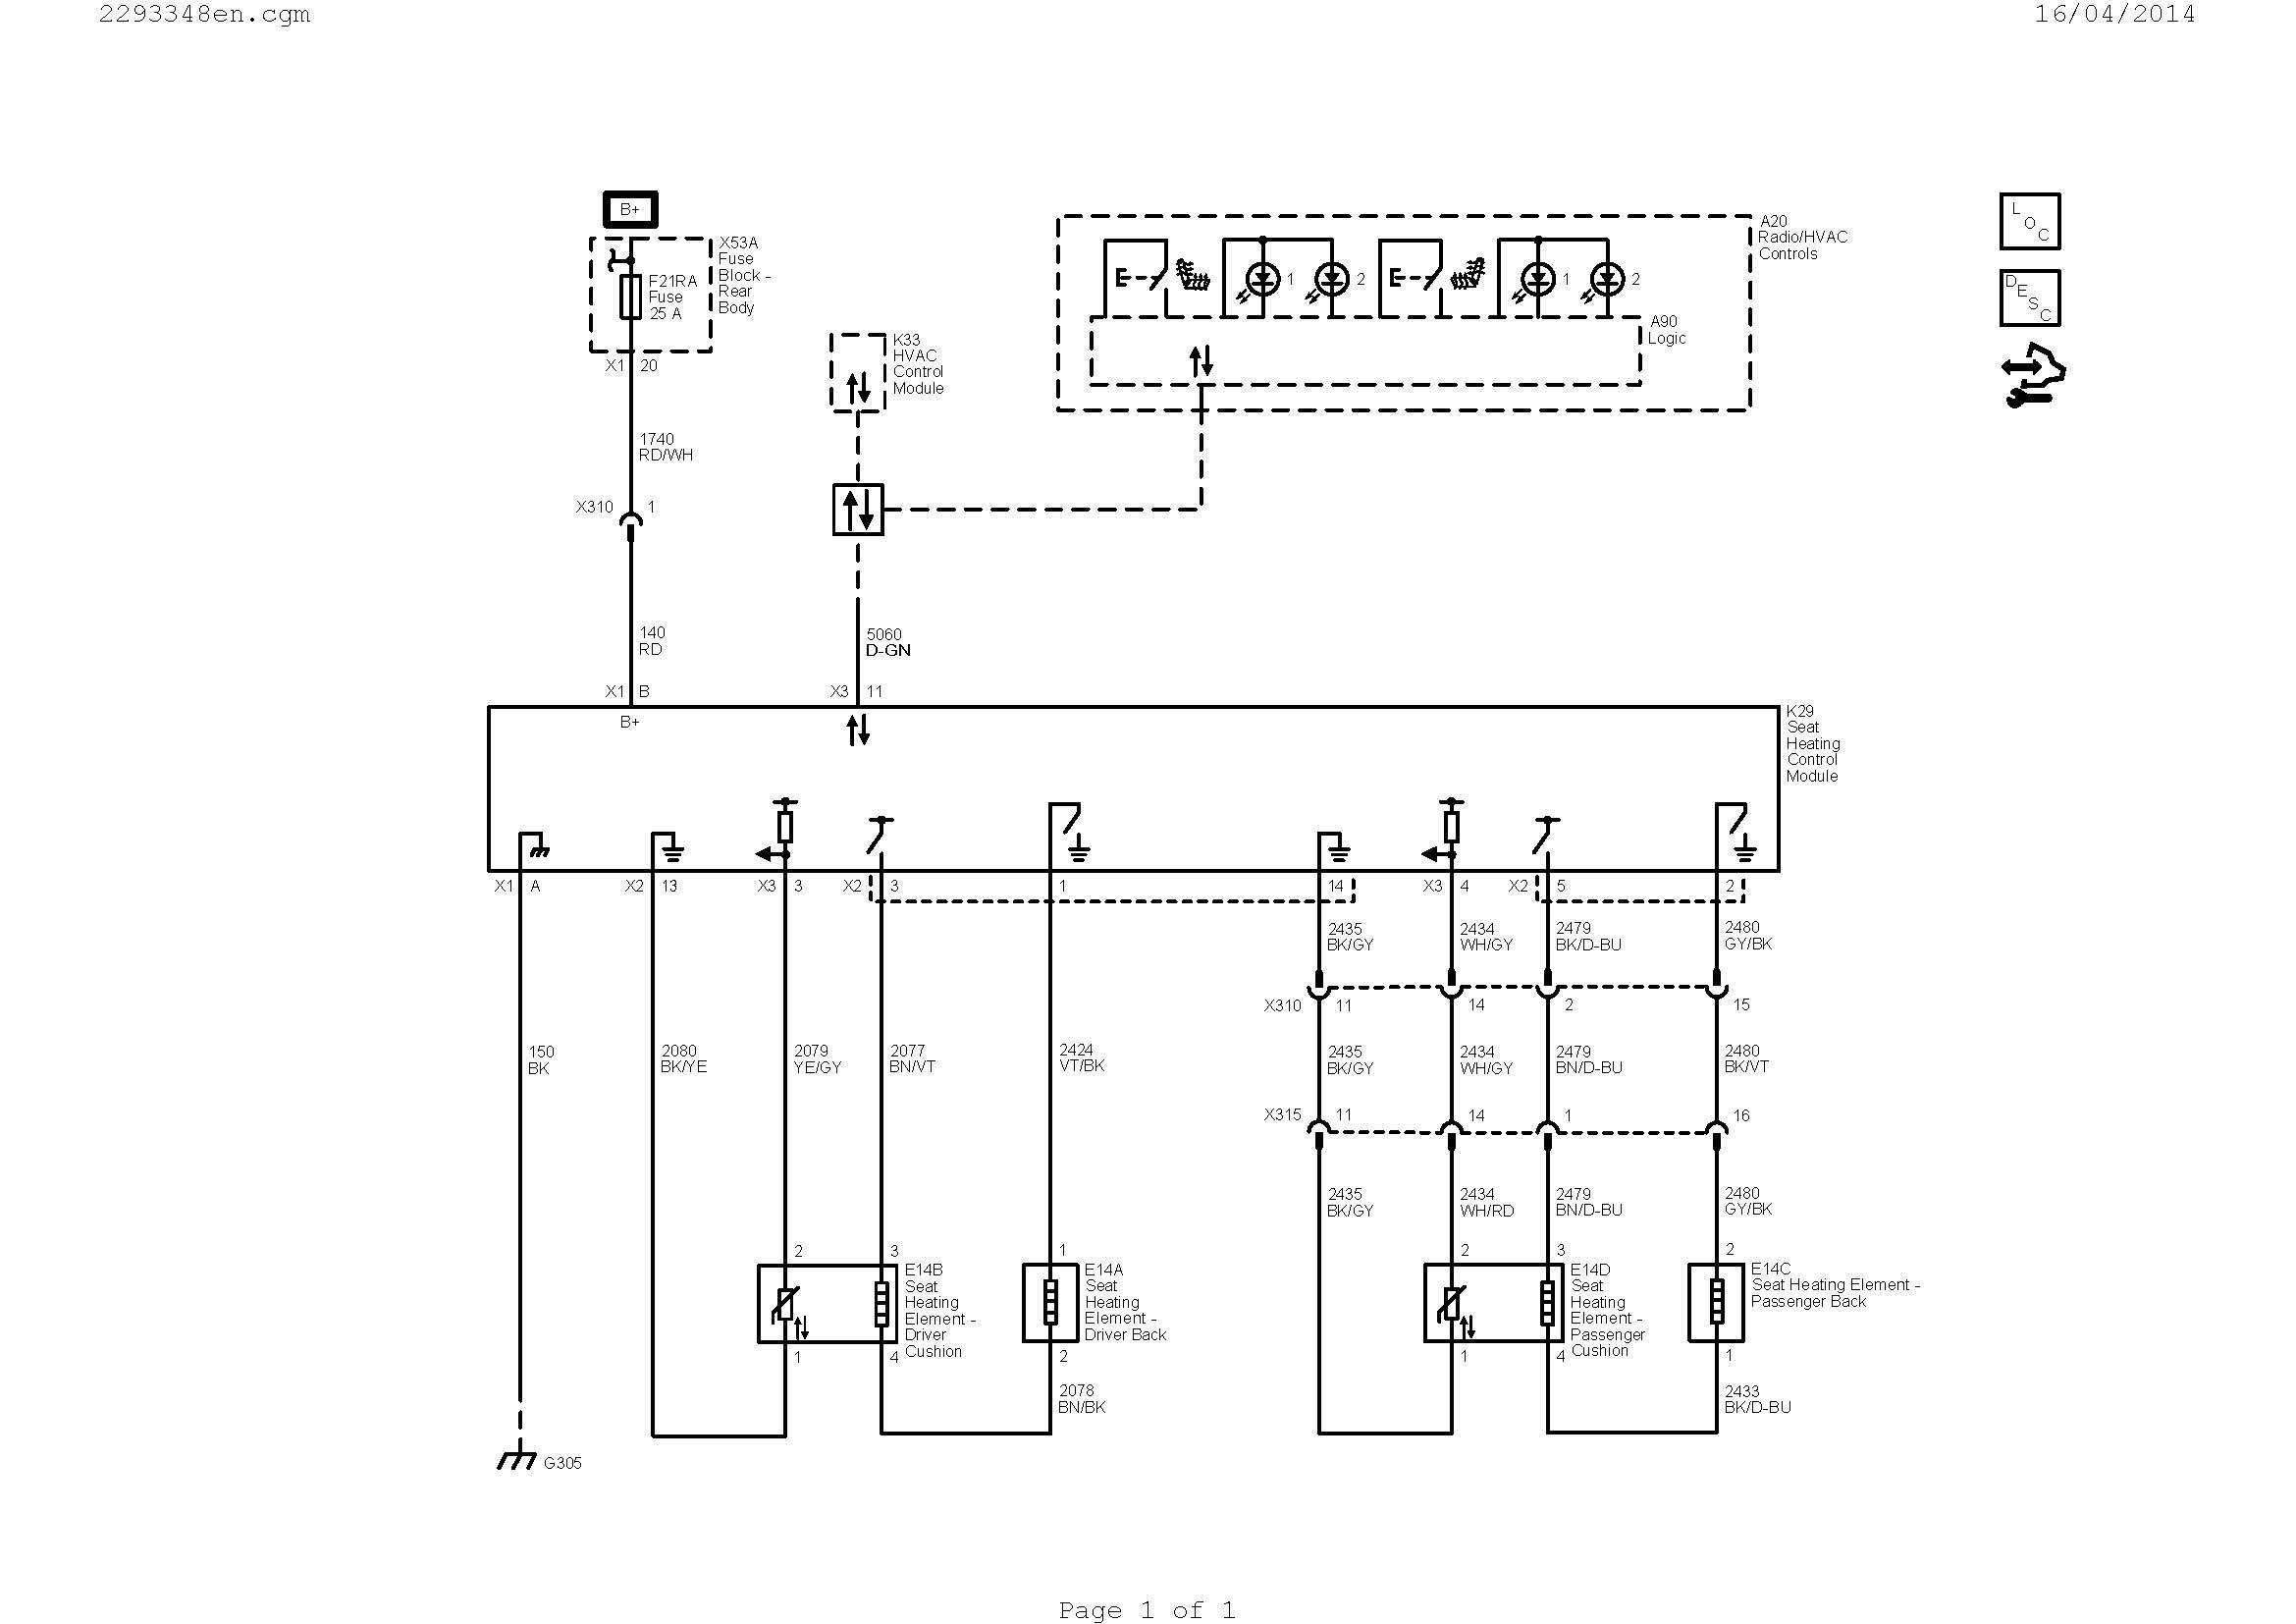 emergency push button wiring diagram Download-Wiring Diagram Pics Detail Name emergency push button 12-g